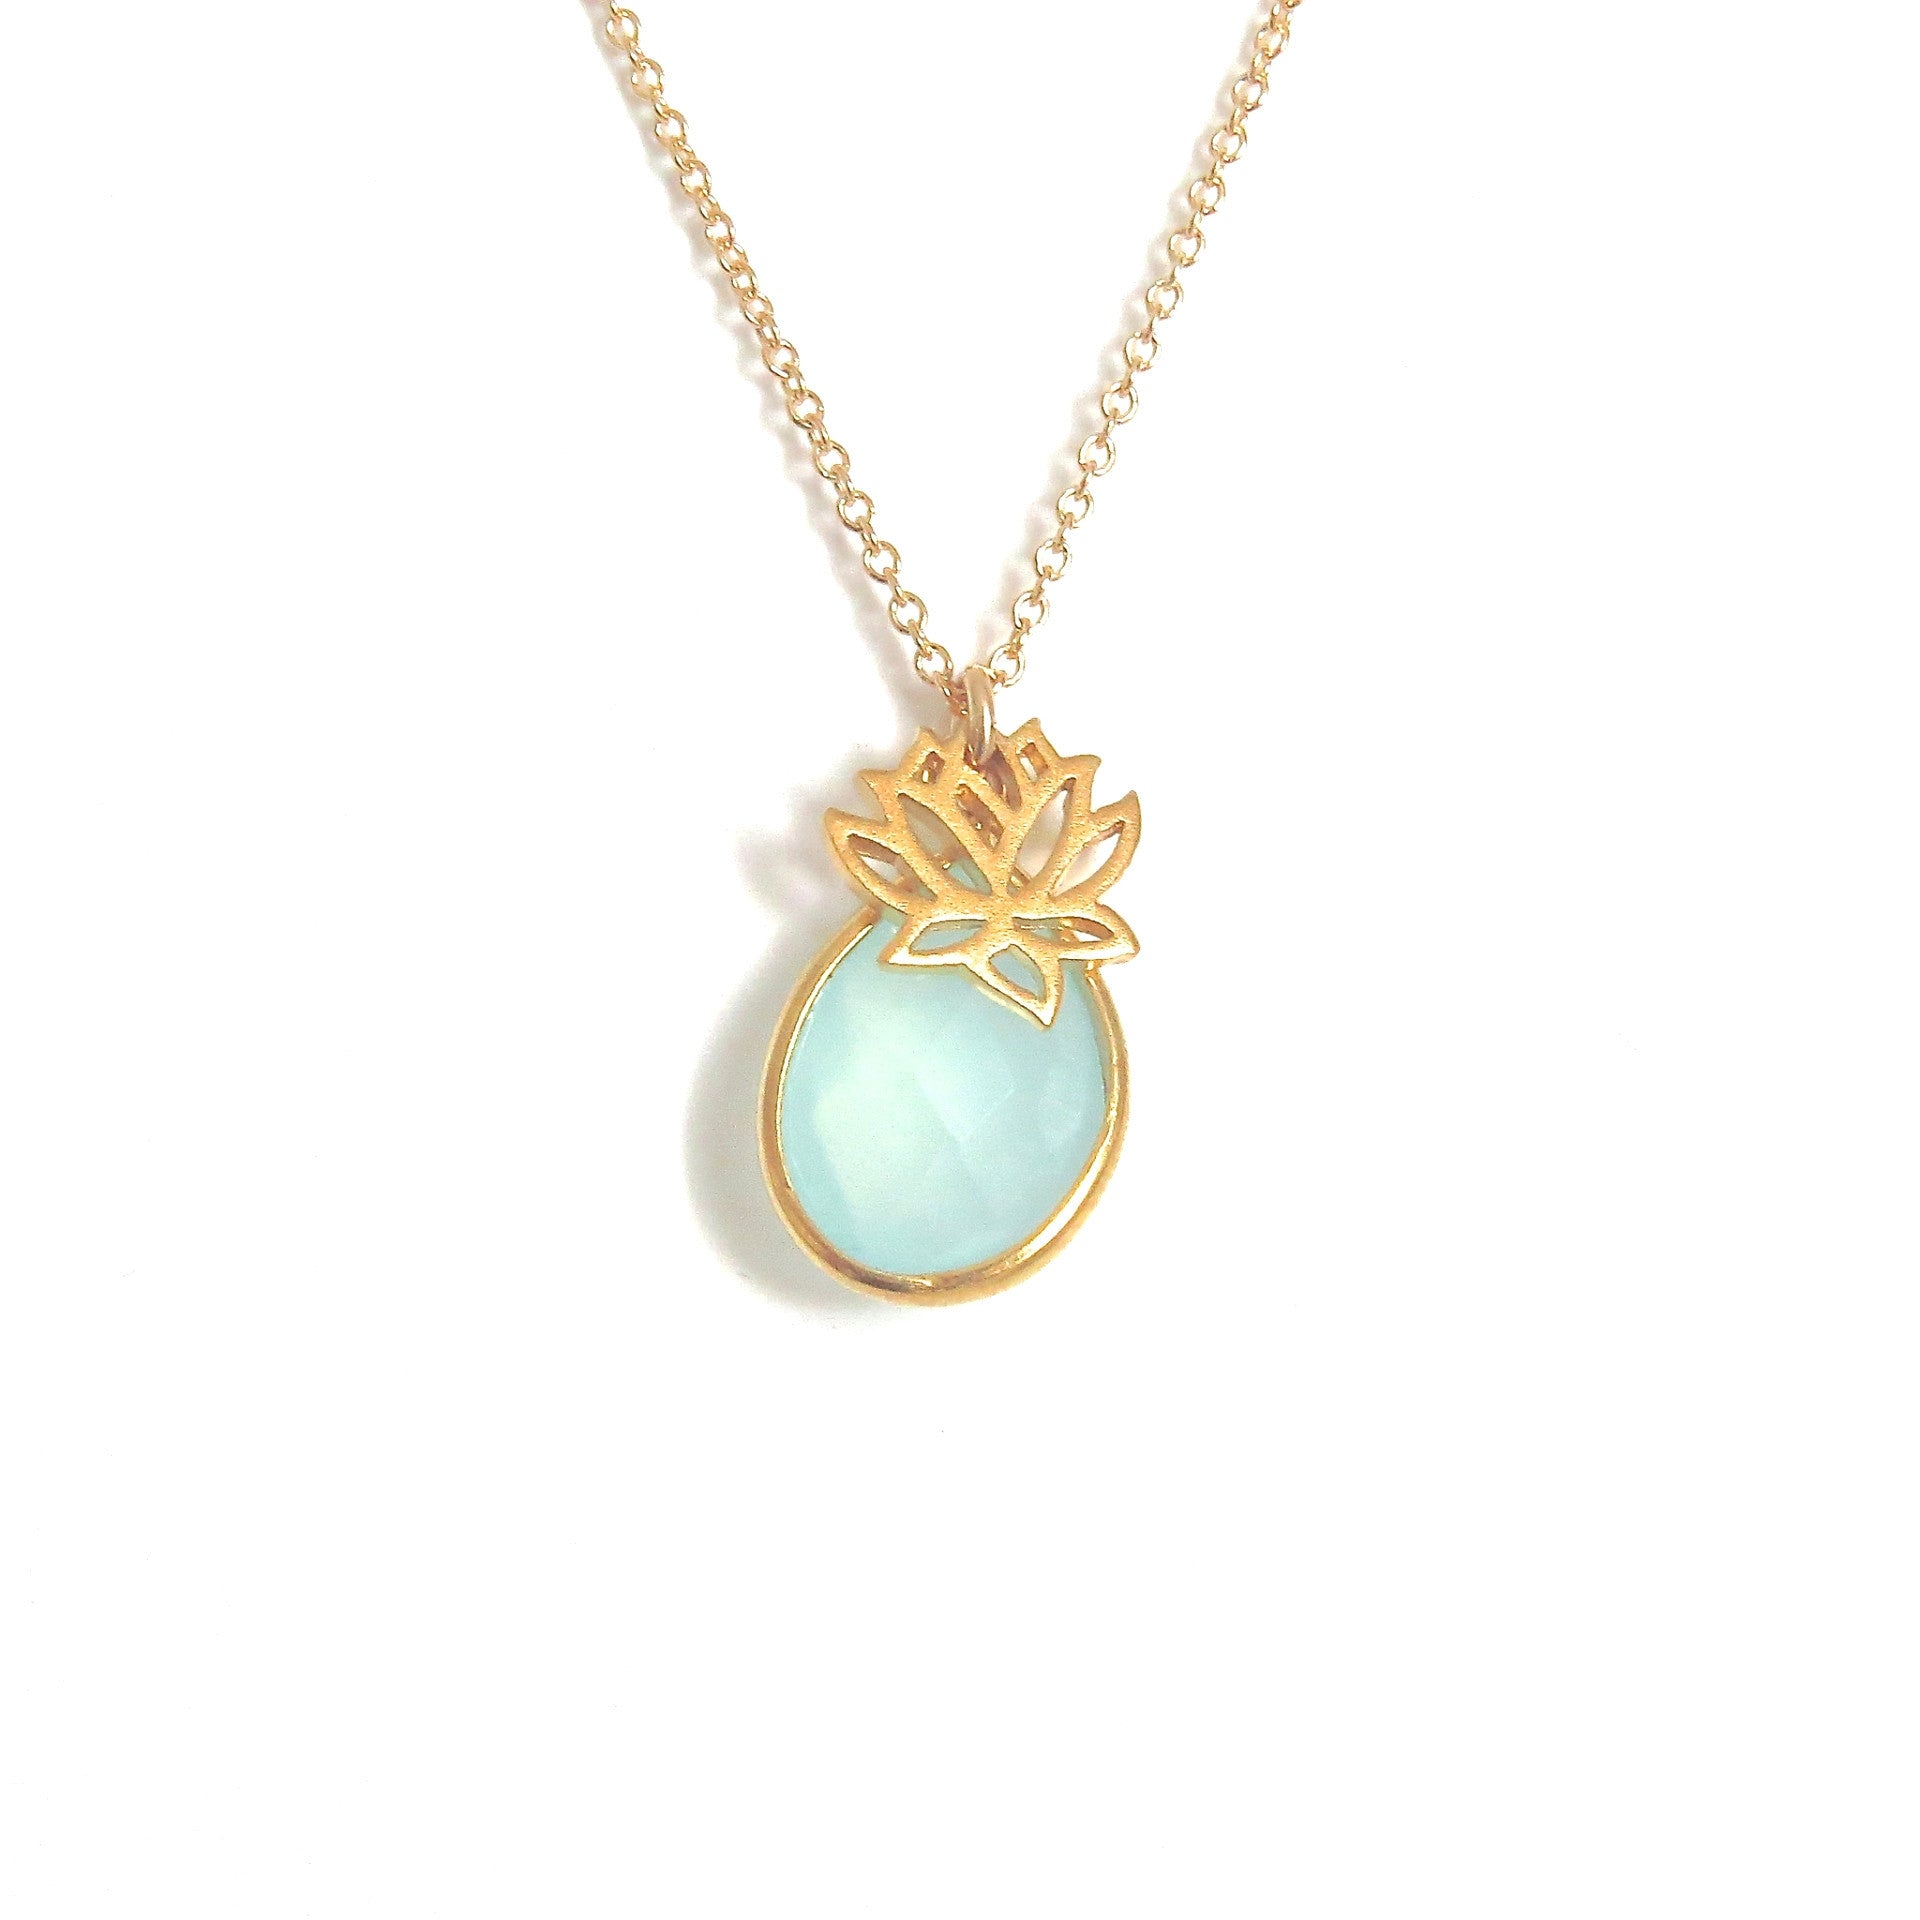 Lotus Flower Gold Necklace With Gemstone Accents Tangerine Jewelry